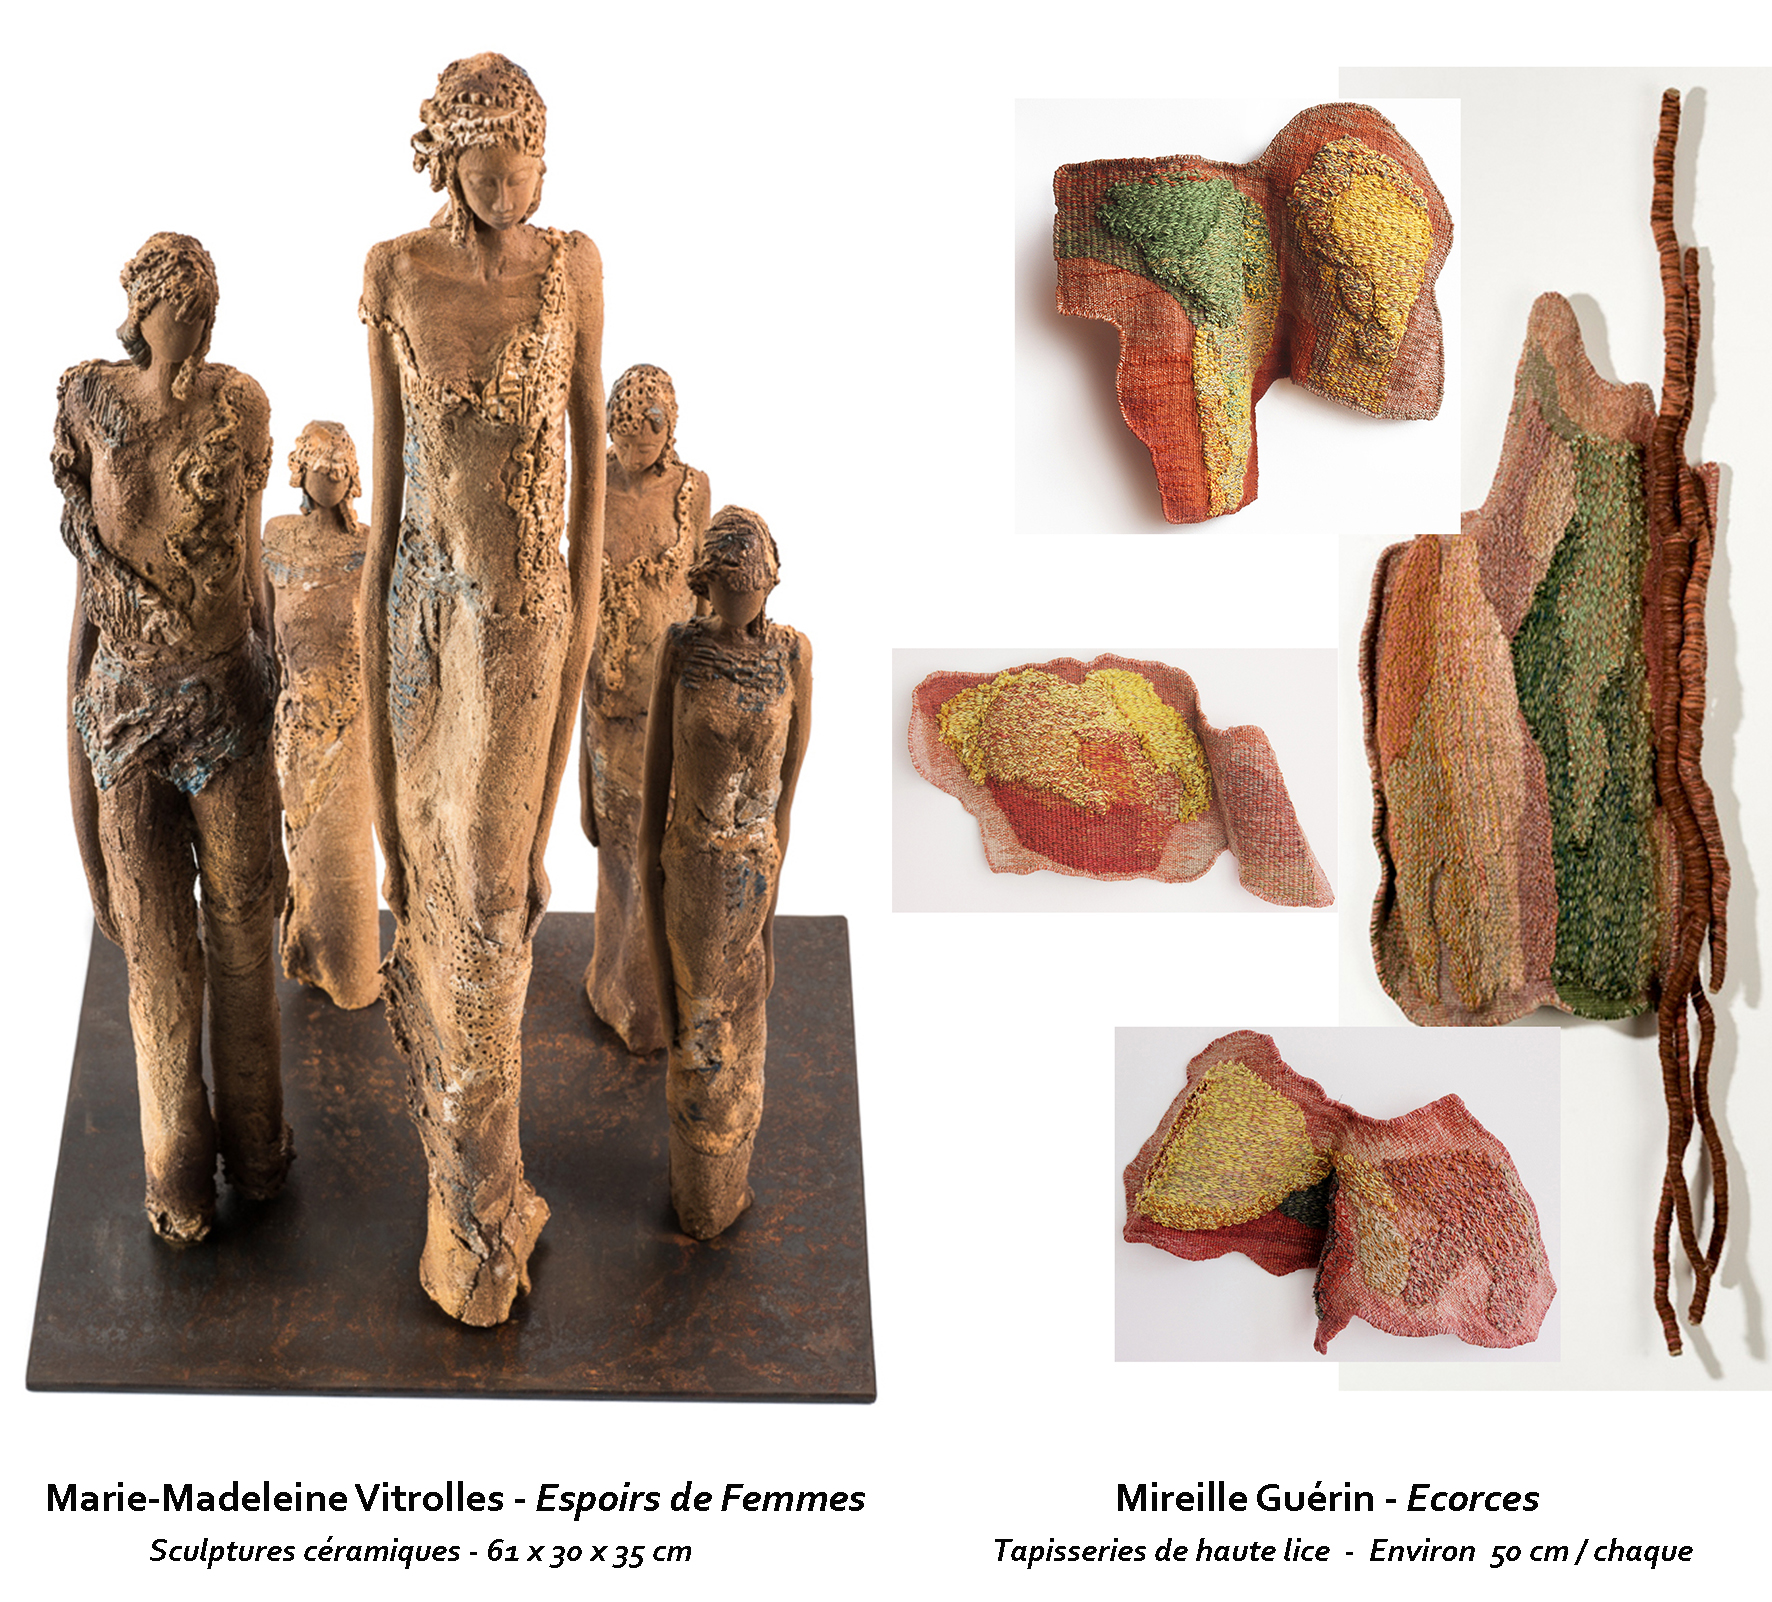 New Artworks of Mireille Guérin and Marie-Madeleine Vitrolles